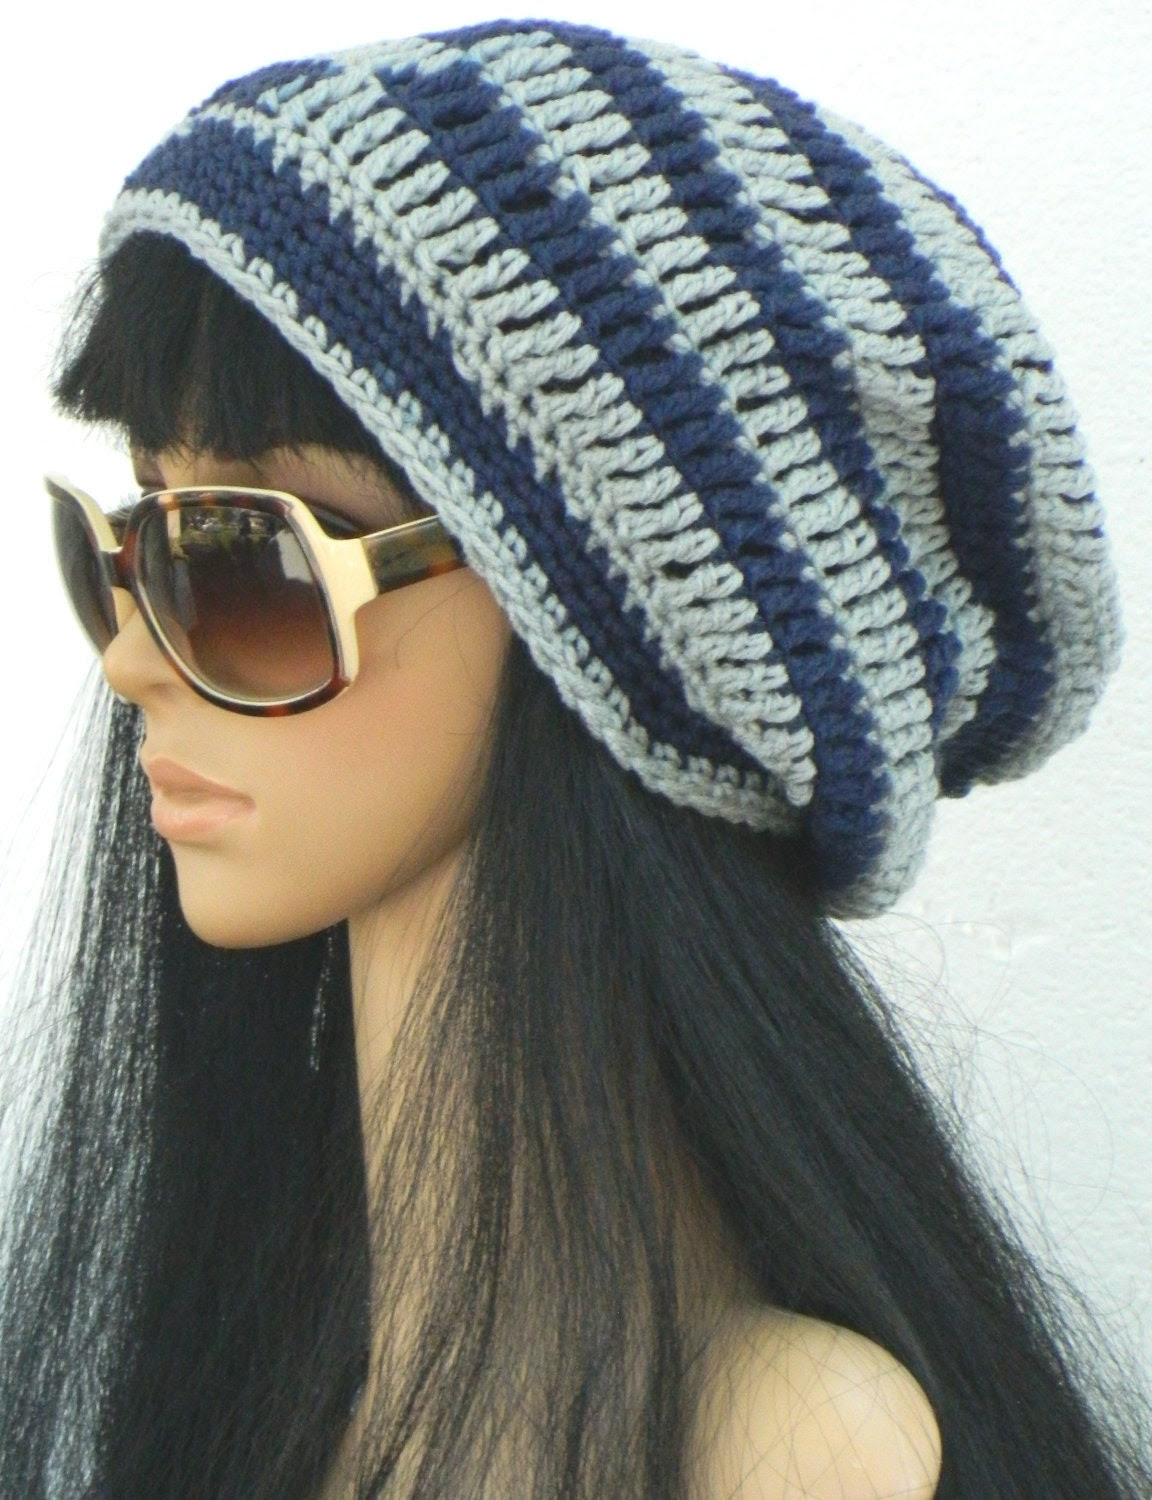 Beanie Hat Winter Slouchy Tams Berets Boho  In Navy Blue And Grey